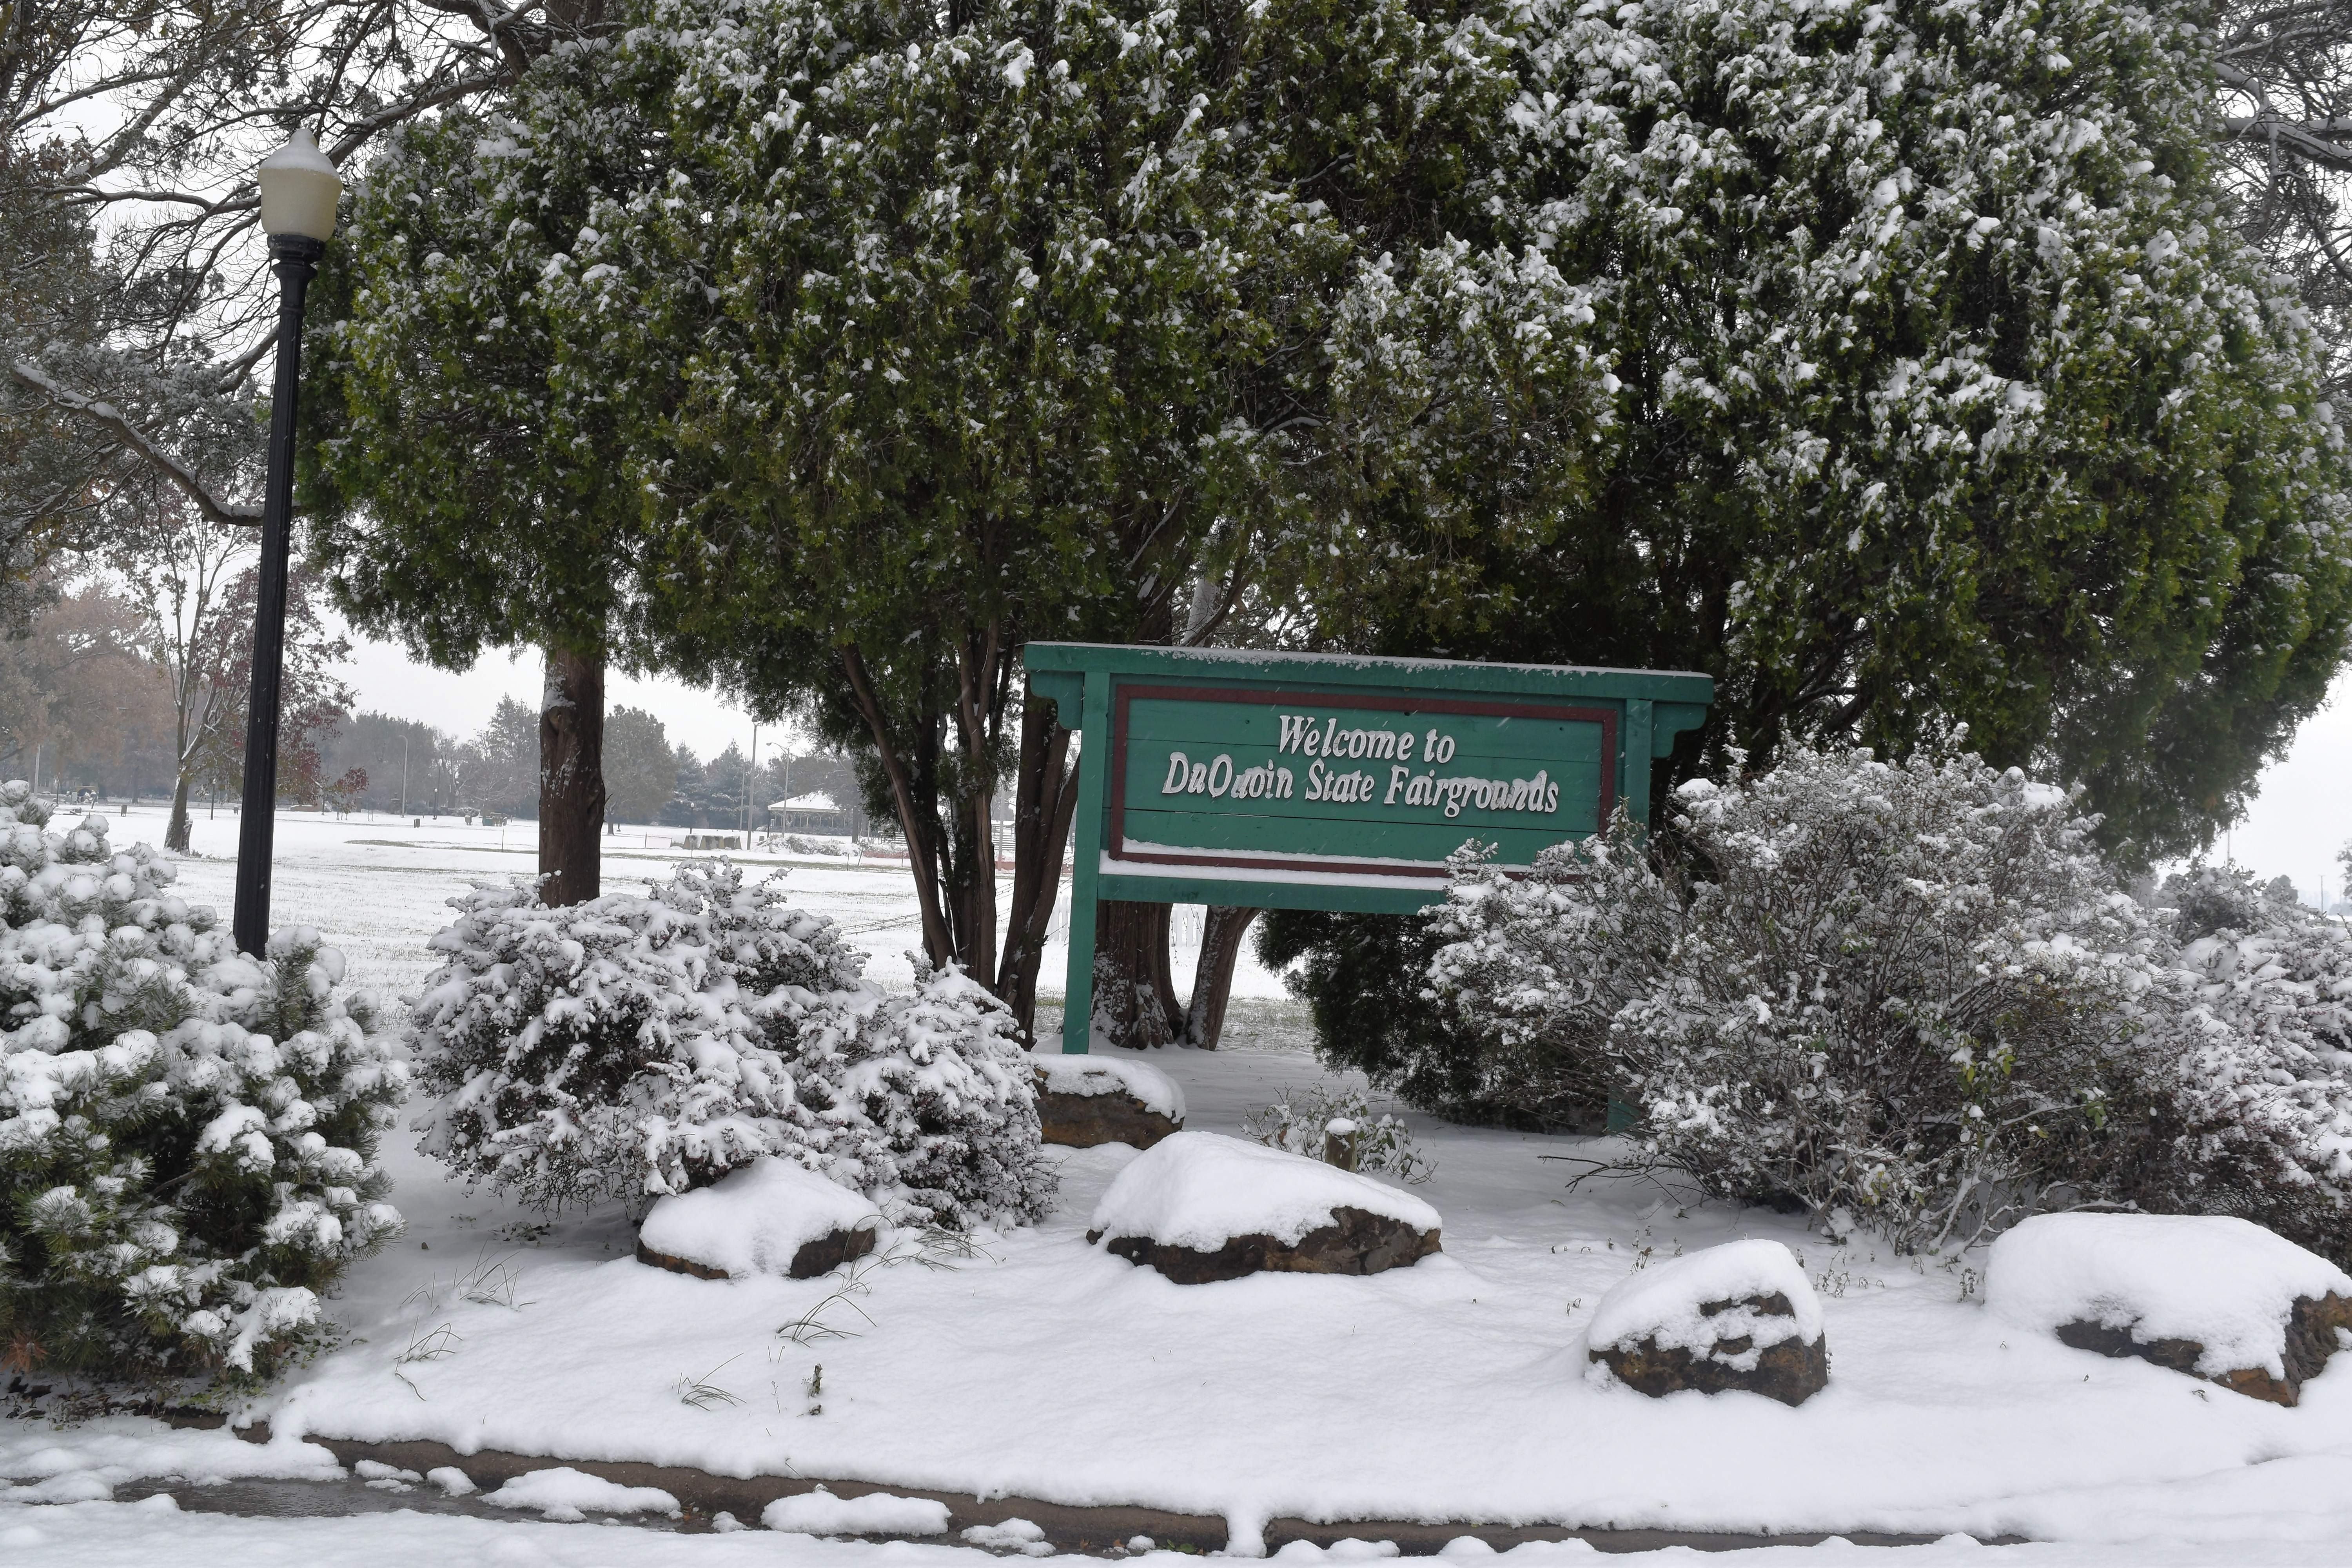 The welcome sign inside the Du Quoin State Fairgrounds looks picturesque with the newly fallen snow surrounding it.